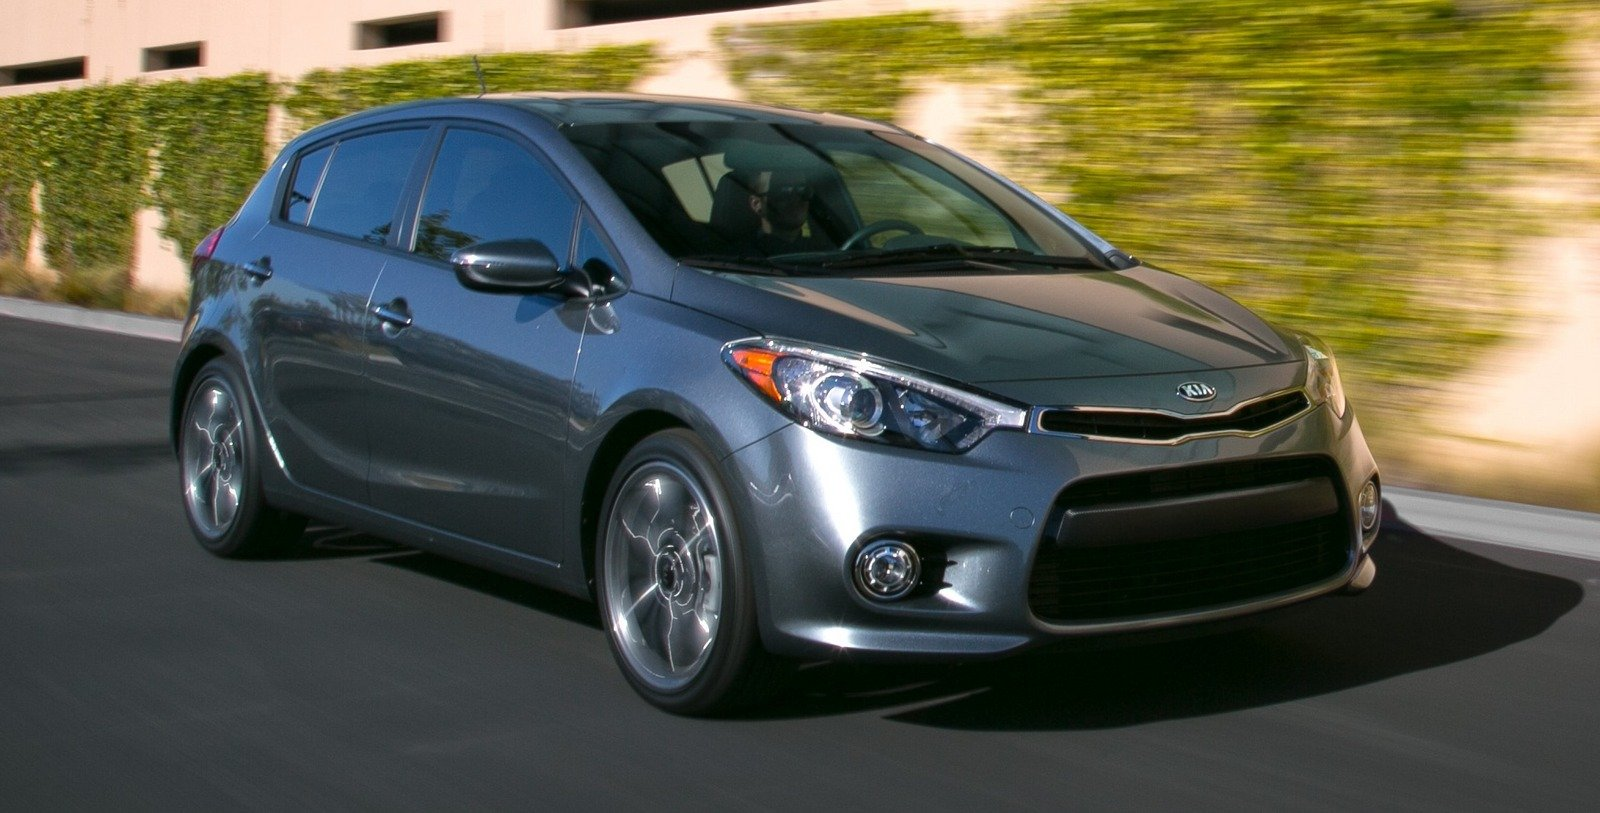 2014 kia forte5 picture 510170 car review top speed. Black Bedroom Furniture Sets. Home Design Ideas